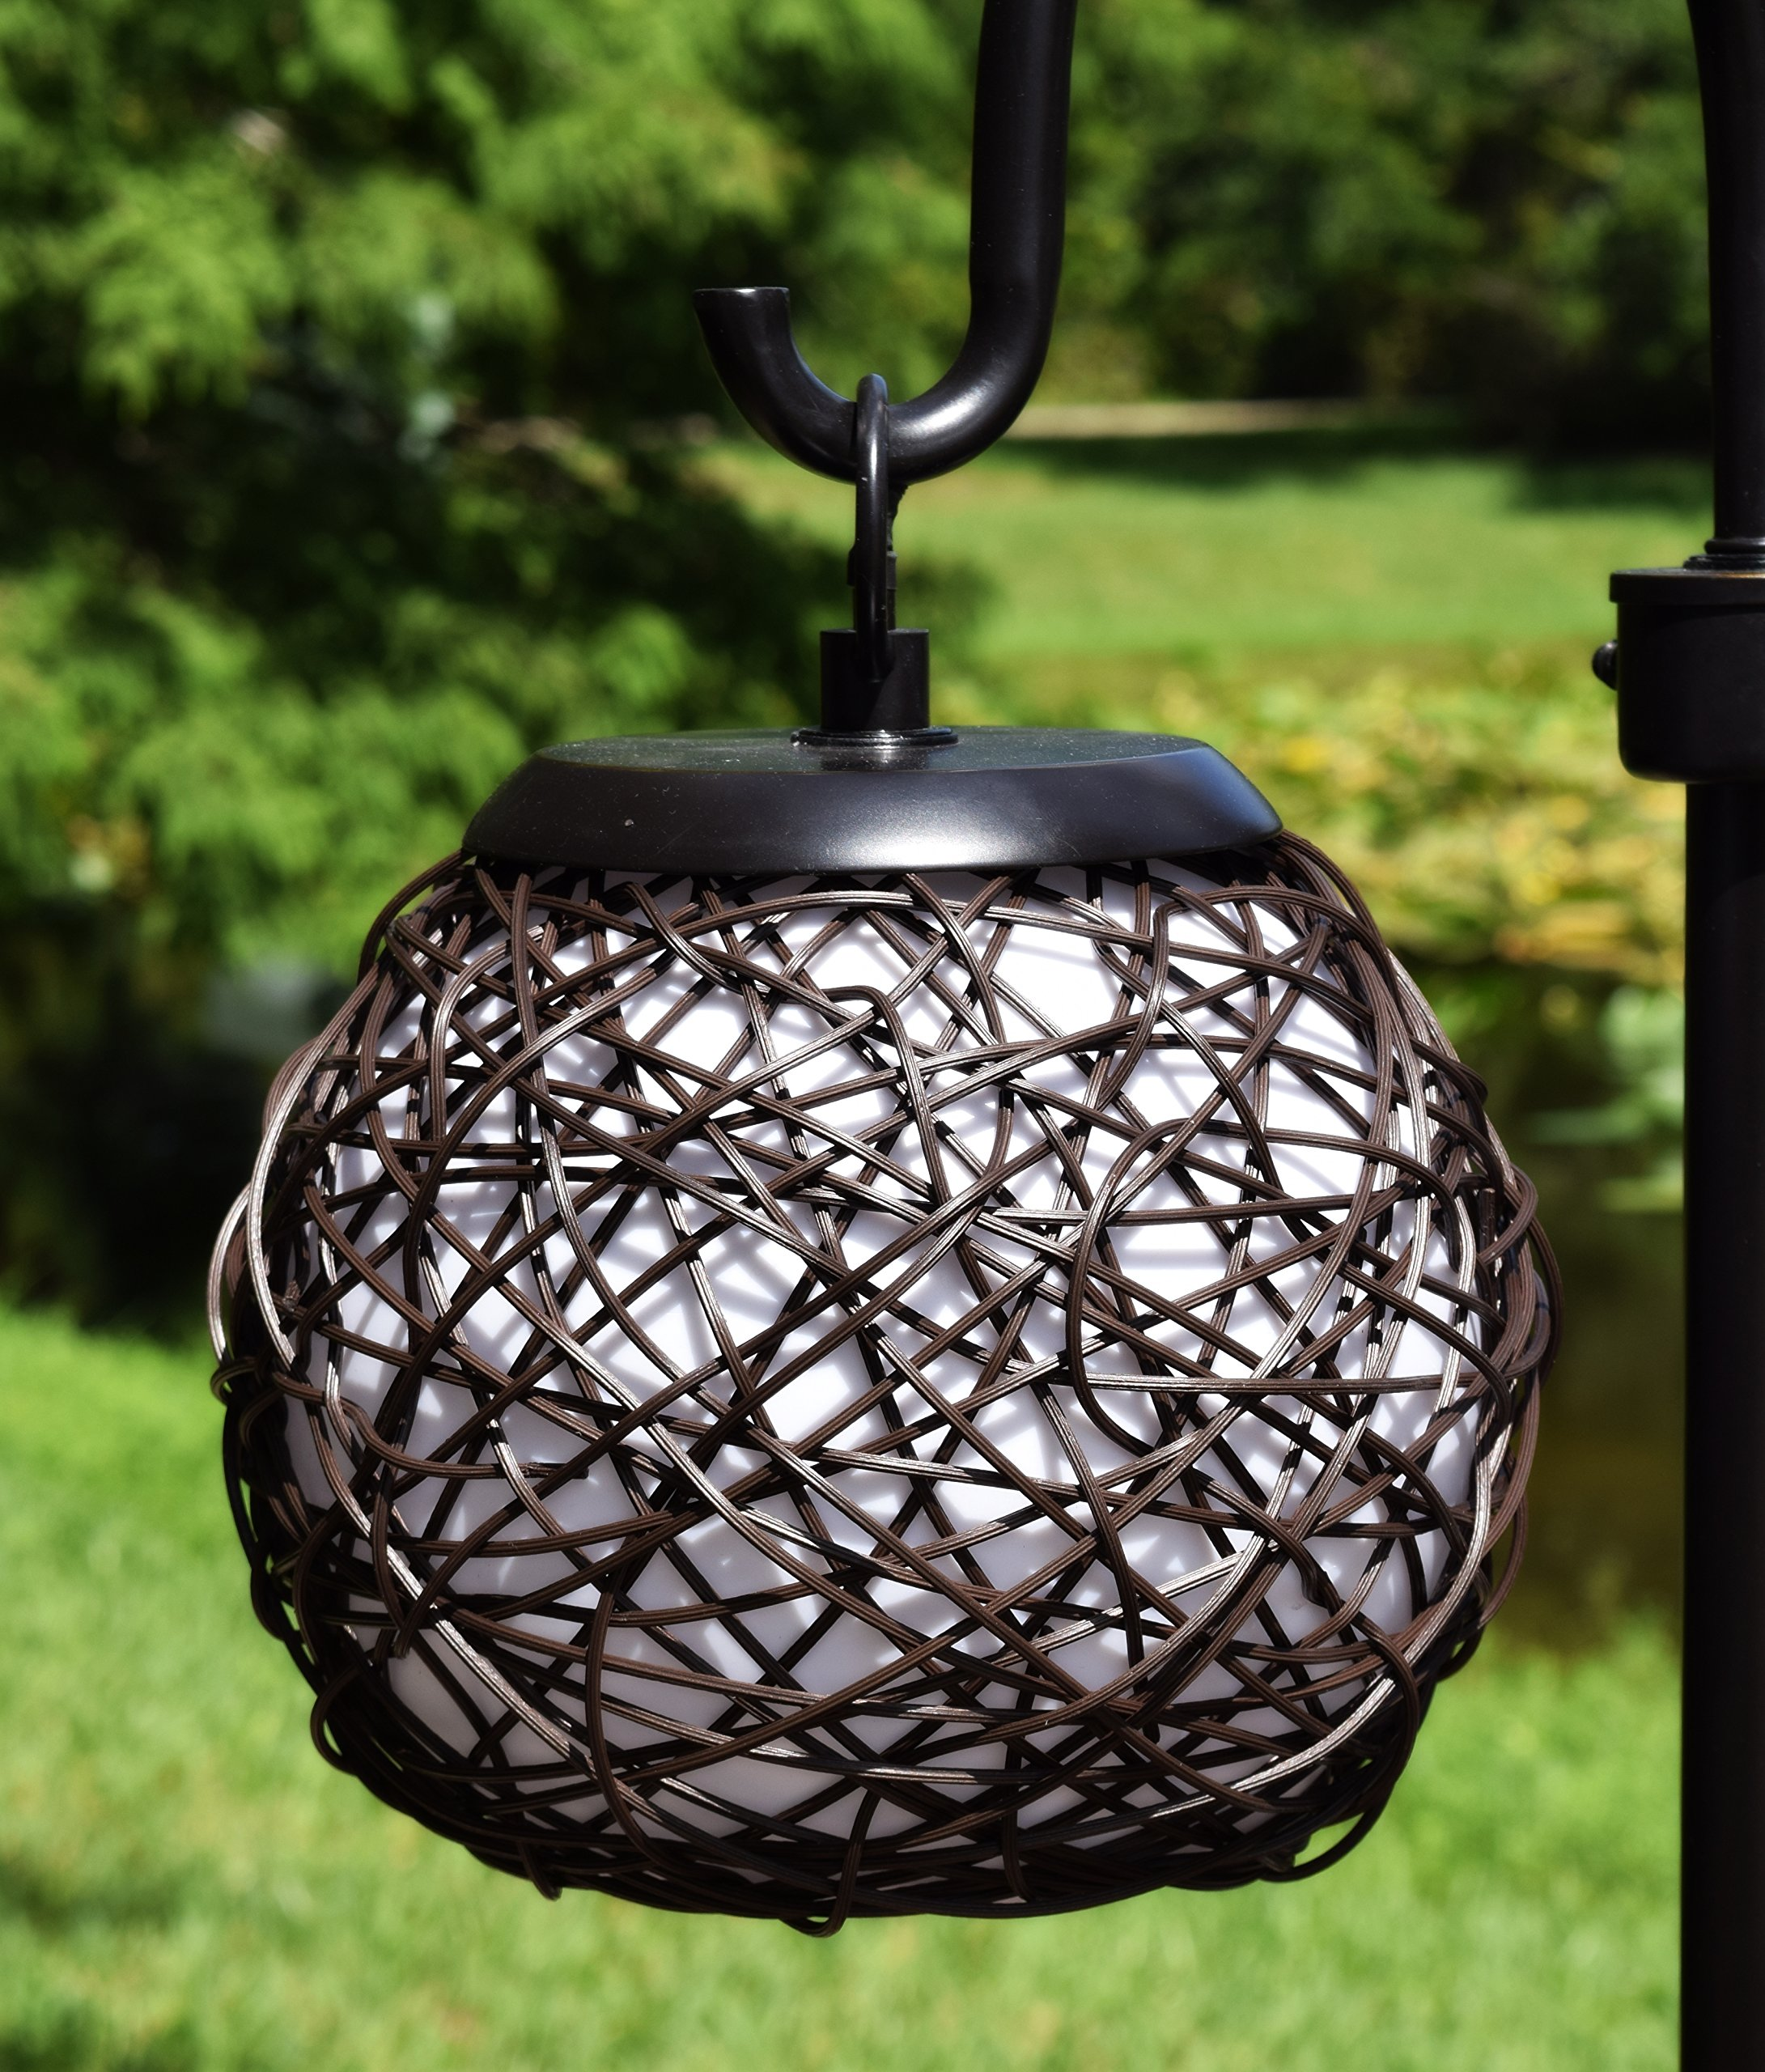 Kenroy Home 32245BRZ Castillo Outdoor Table Lamp, Bronze Finish by Kenroy Home (Image #4)